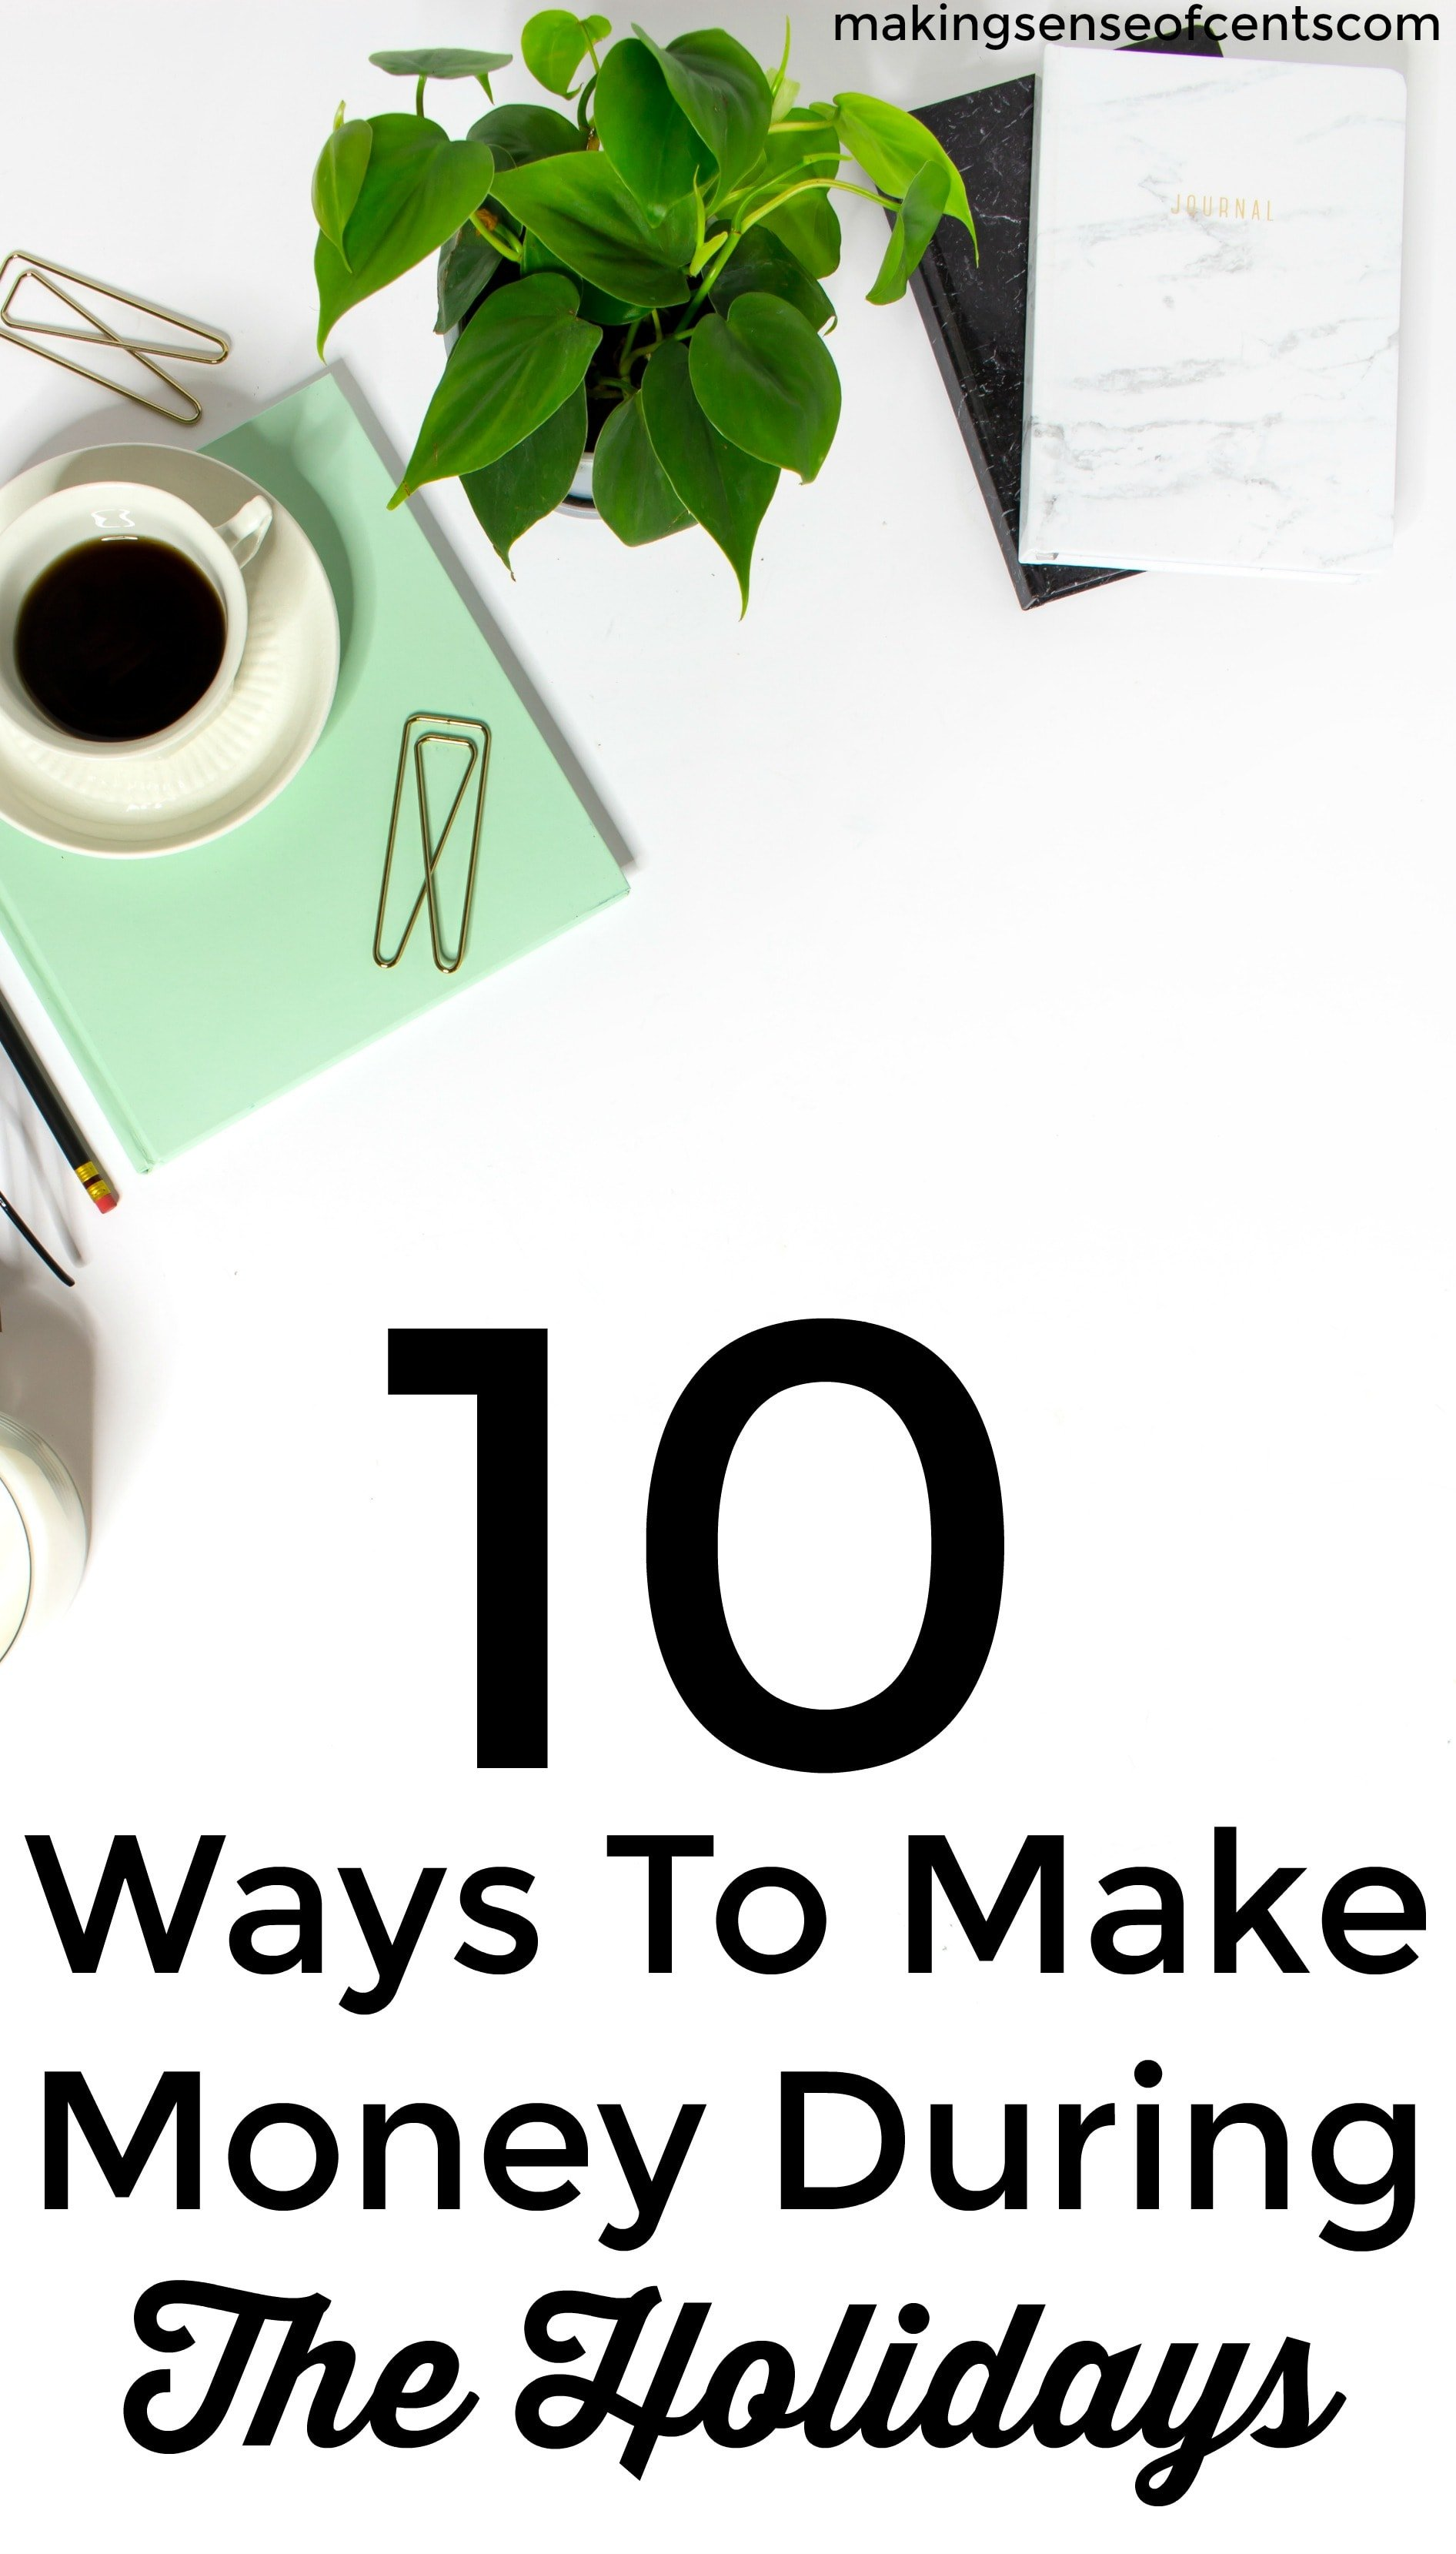 Check out this list of 10 ways to mamke mone during the holidays. This is a great list!